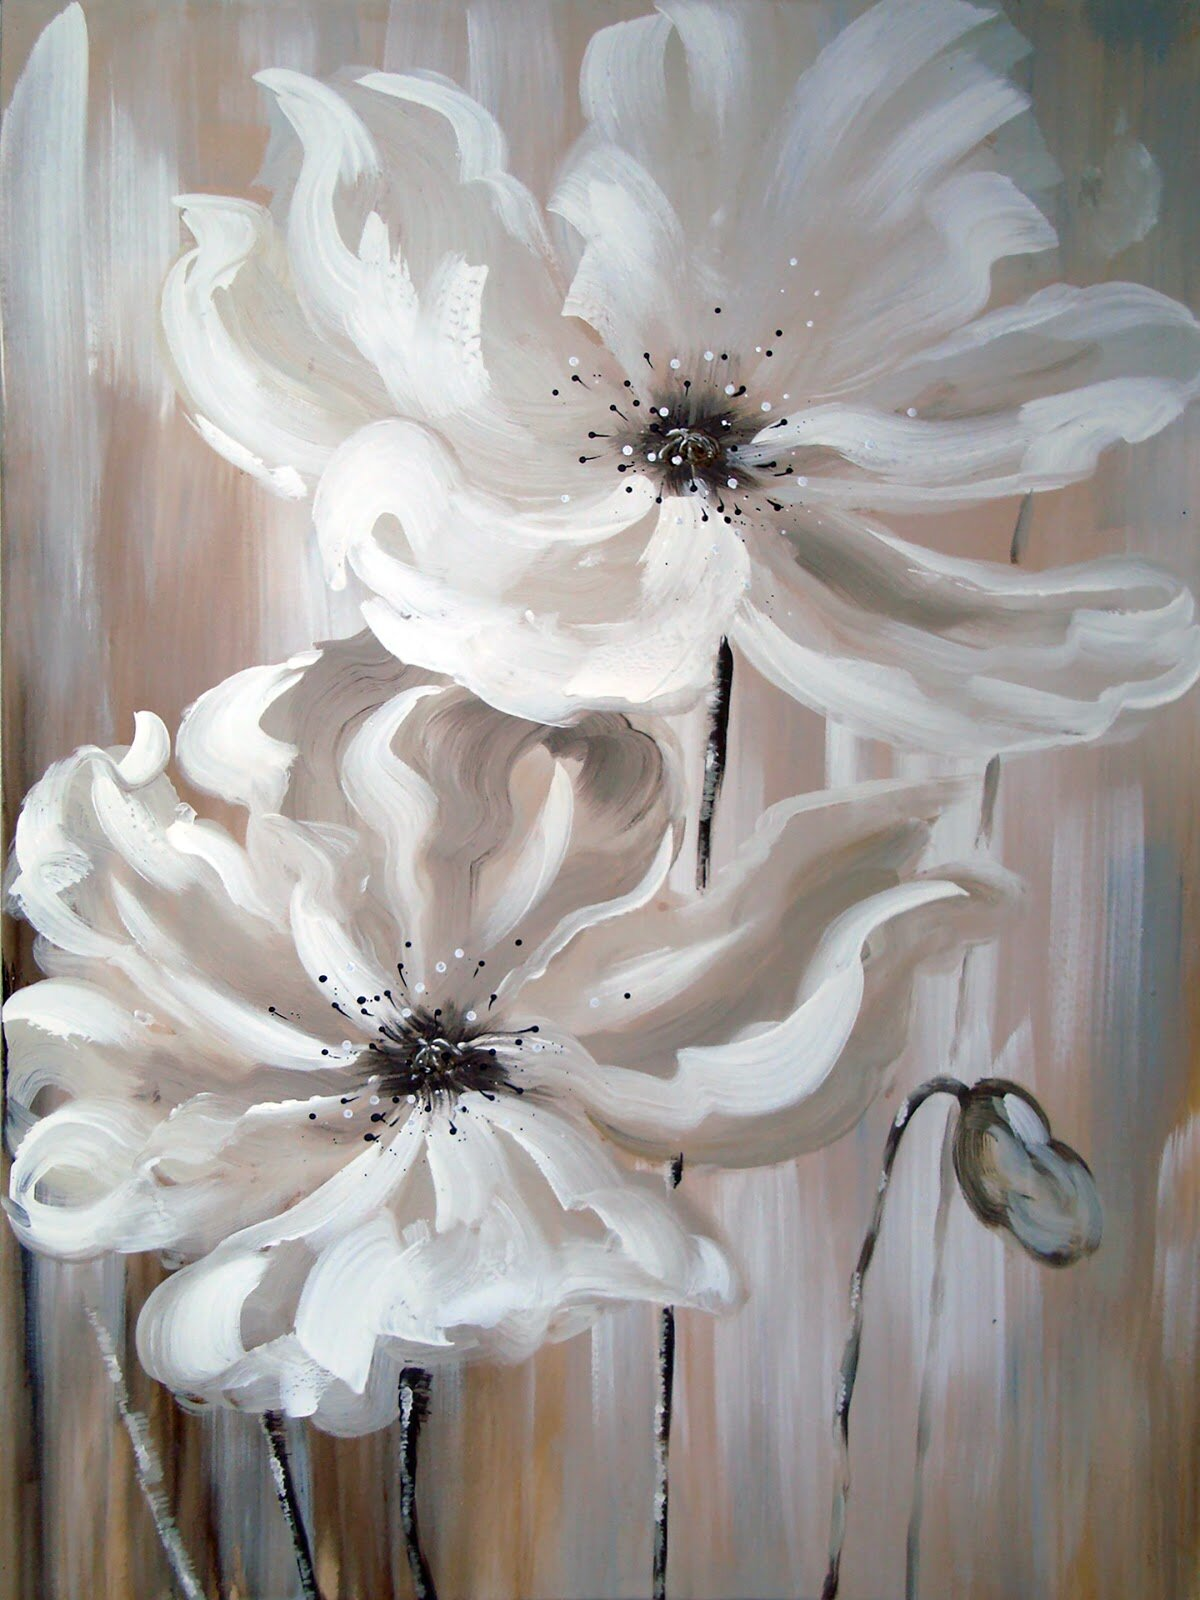 Ebern Designs White Flower I Oil Painting Print On Wrapped Canvas